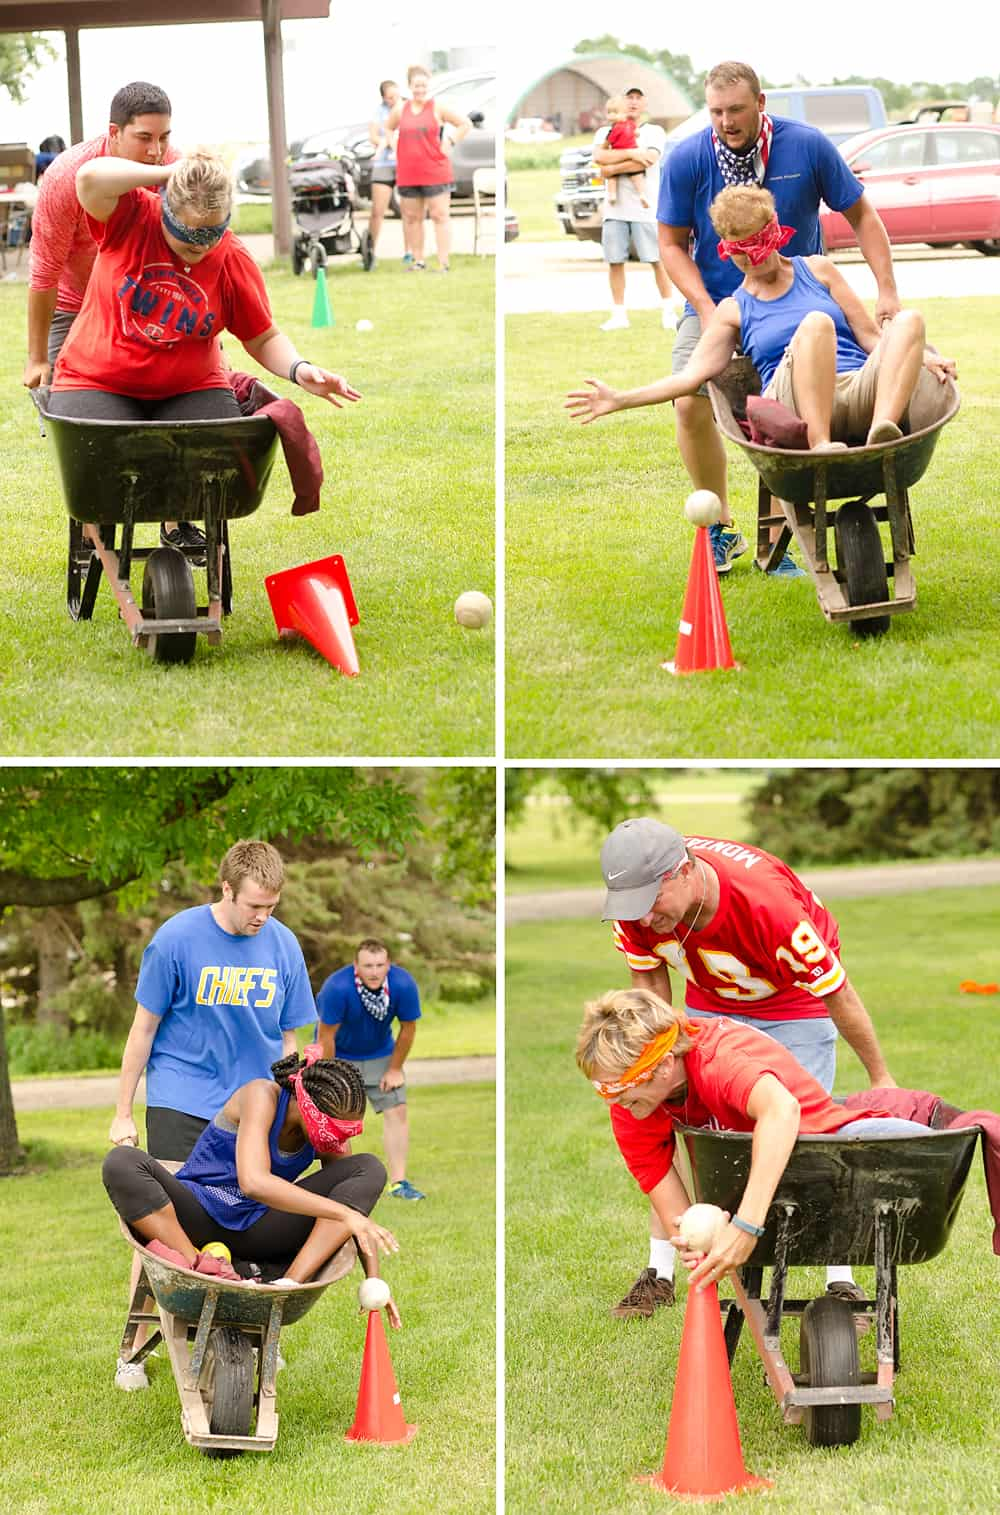 Blindfold-Wheelbarrow-Races-Backyard-Games